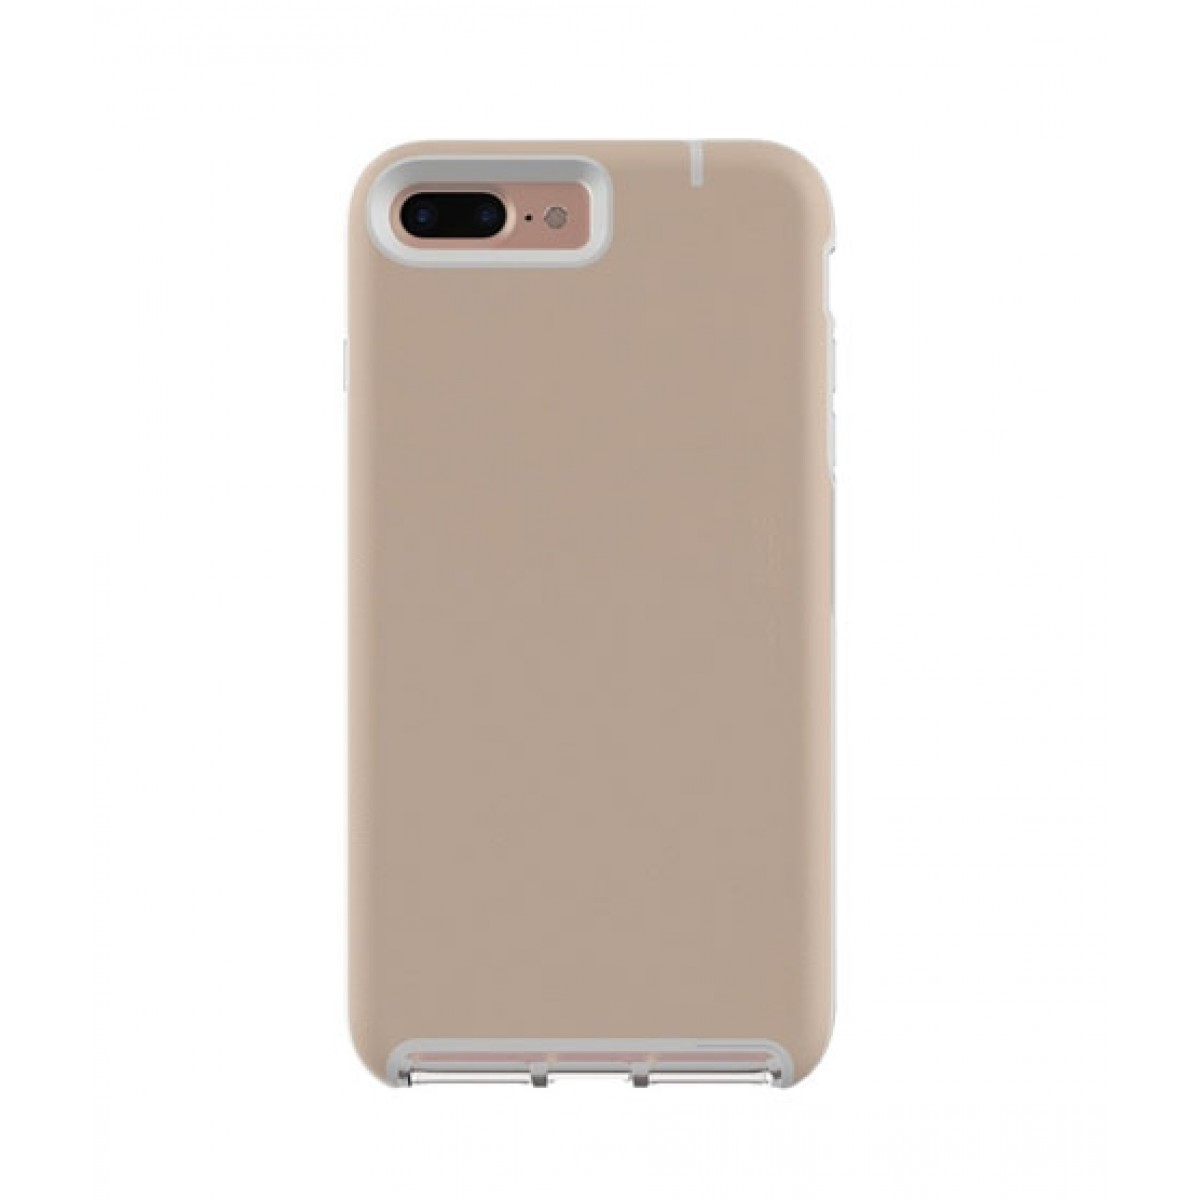 low priced e39c6 d354f Tech21 Evo Go Light Tan Case For iPhone 8 Plus